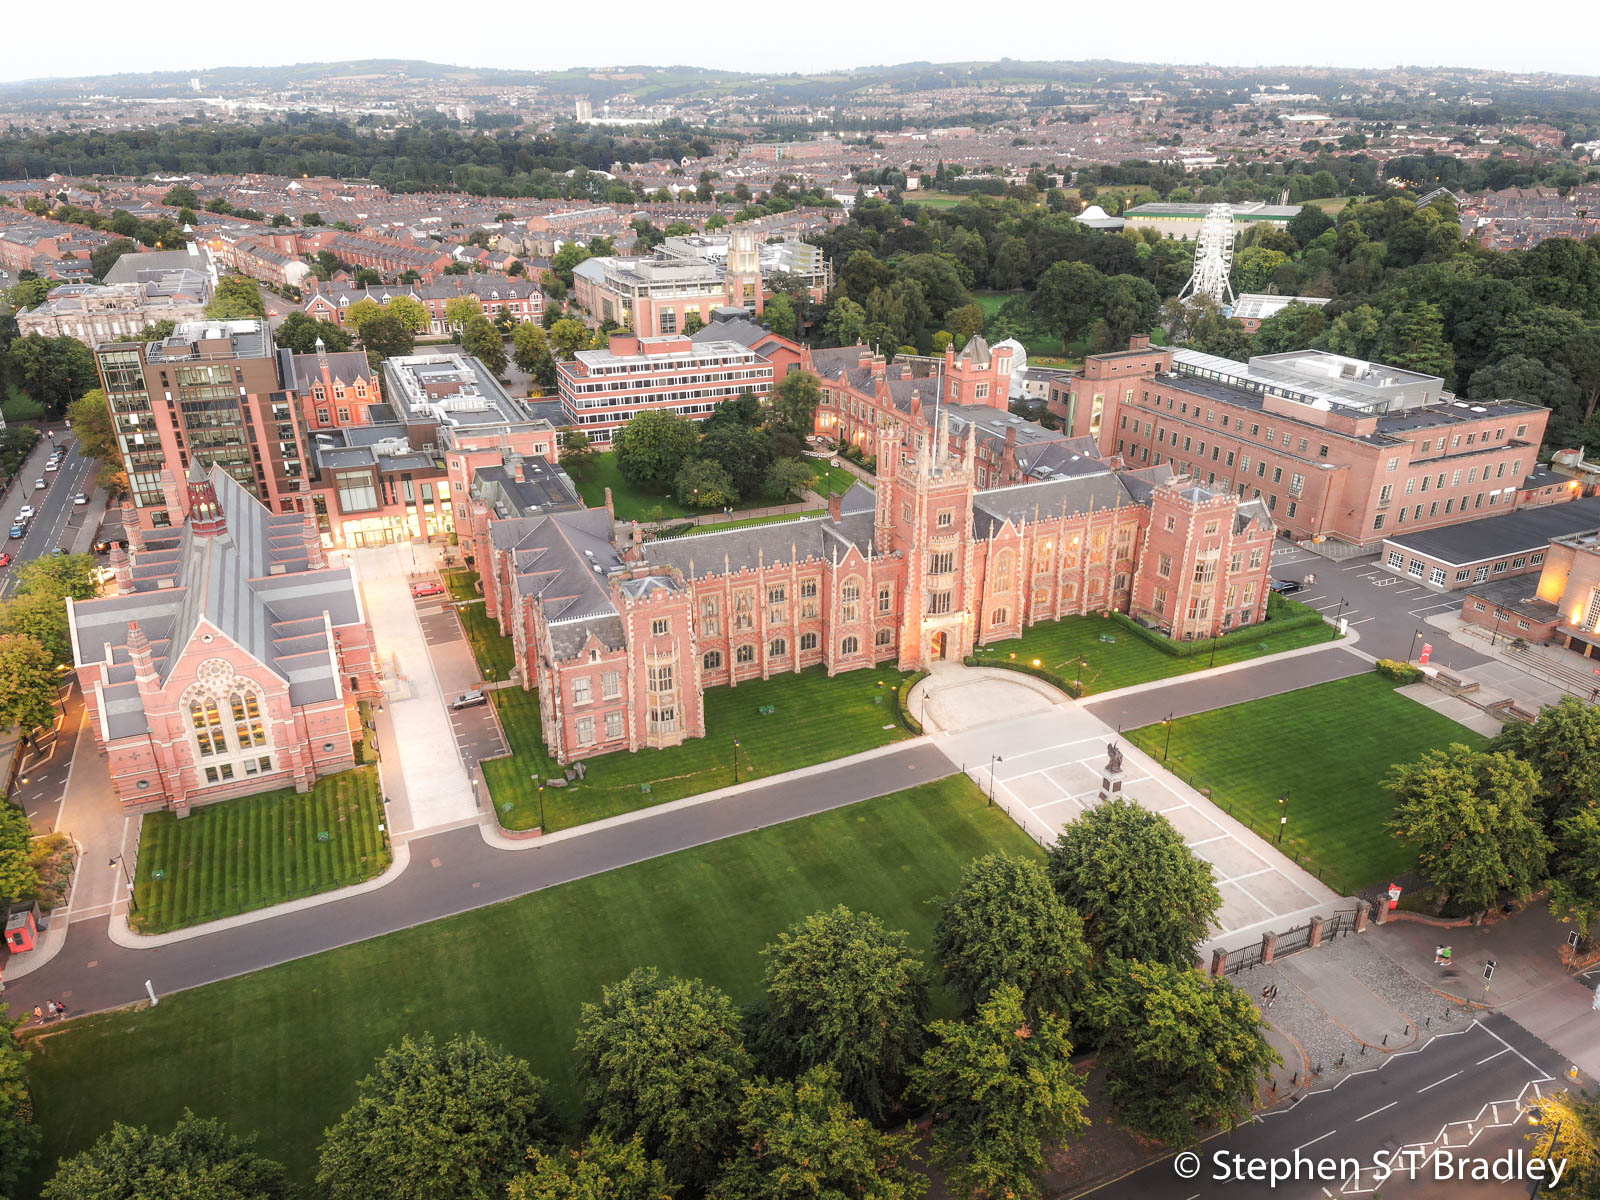 Aerial photograph of Queens University Belfast by Stephen S T Bradley - aerial drone photographer and video production services in Dublin and throughout Ireland. Photo reference 0145